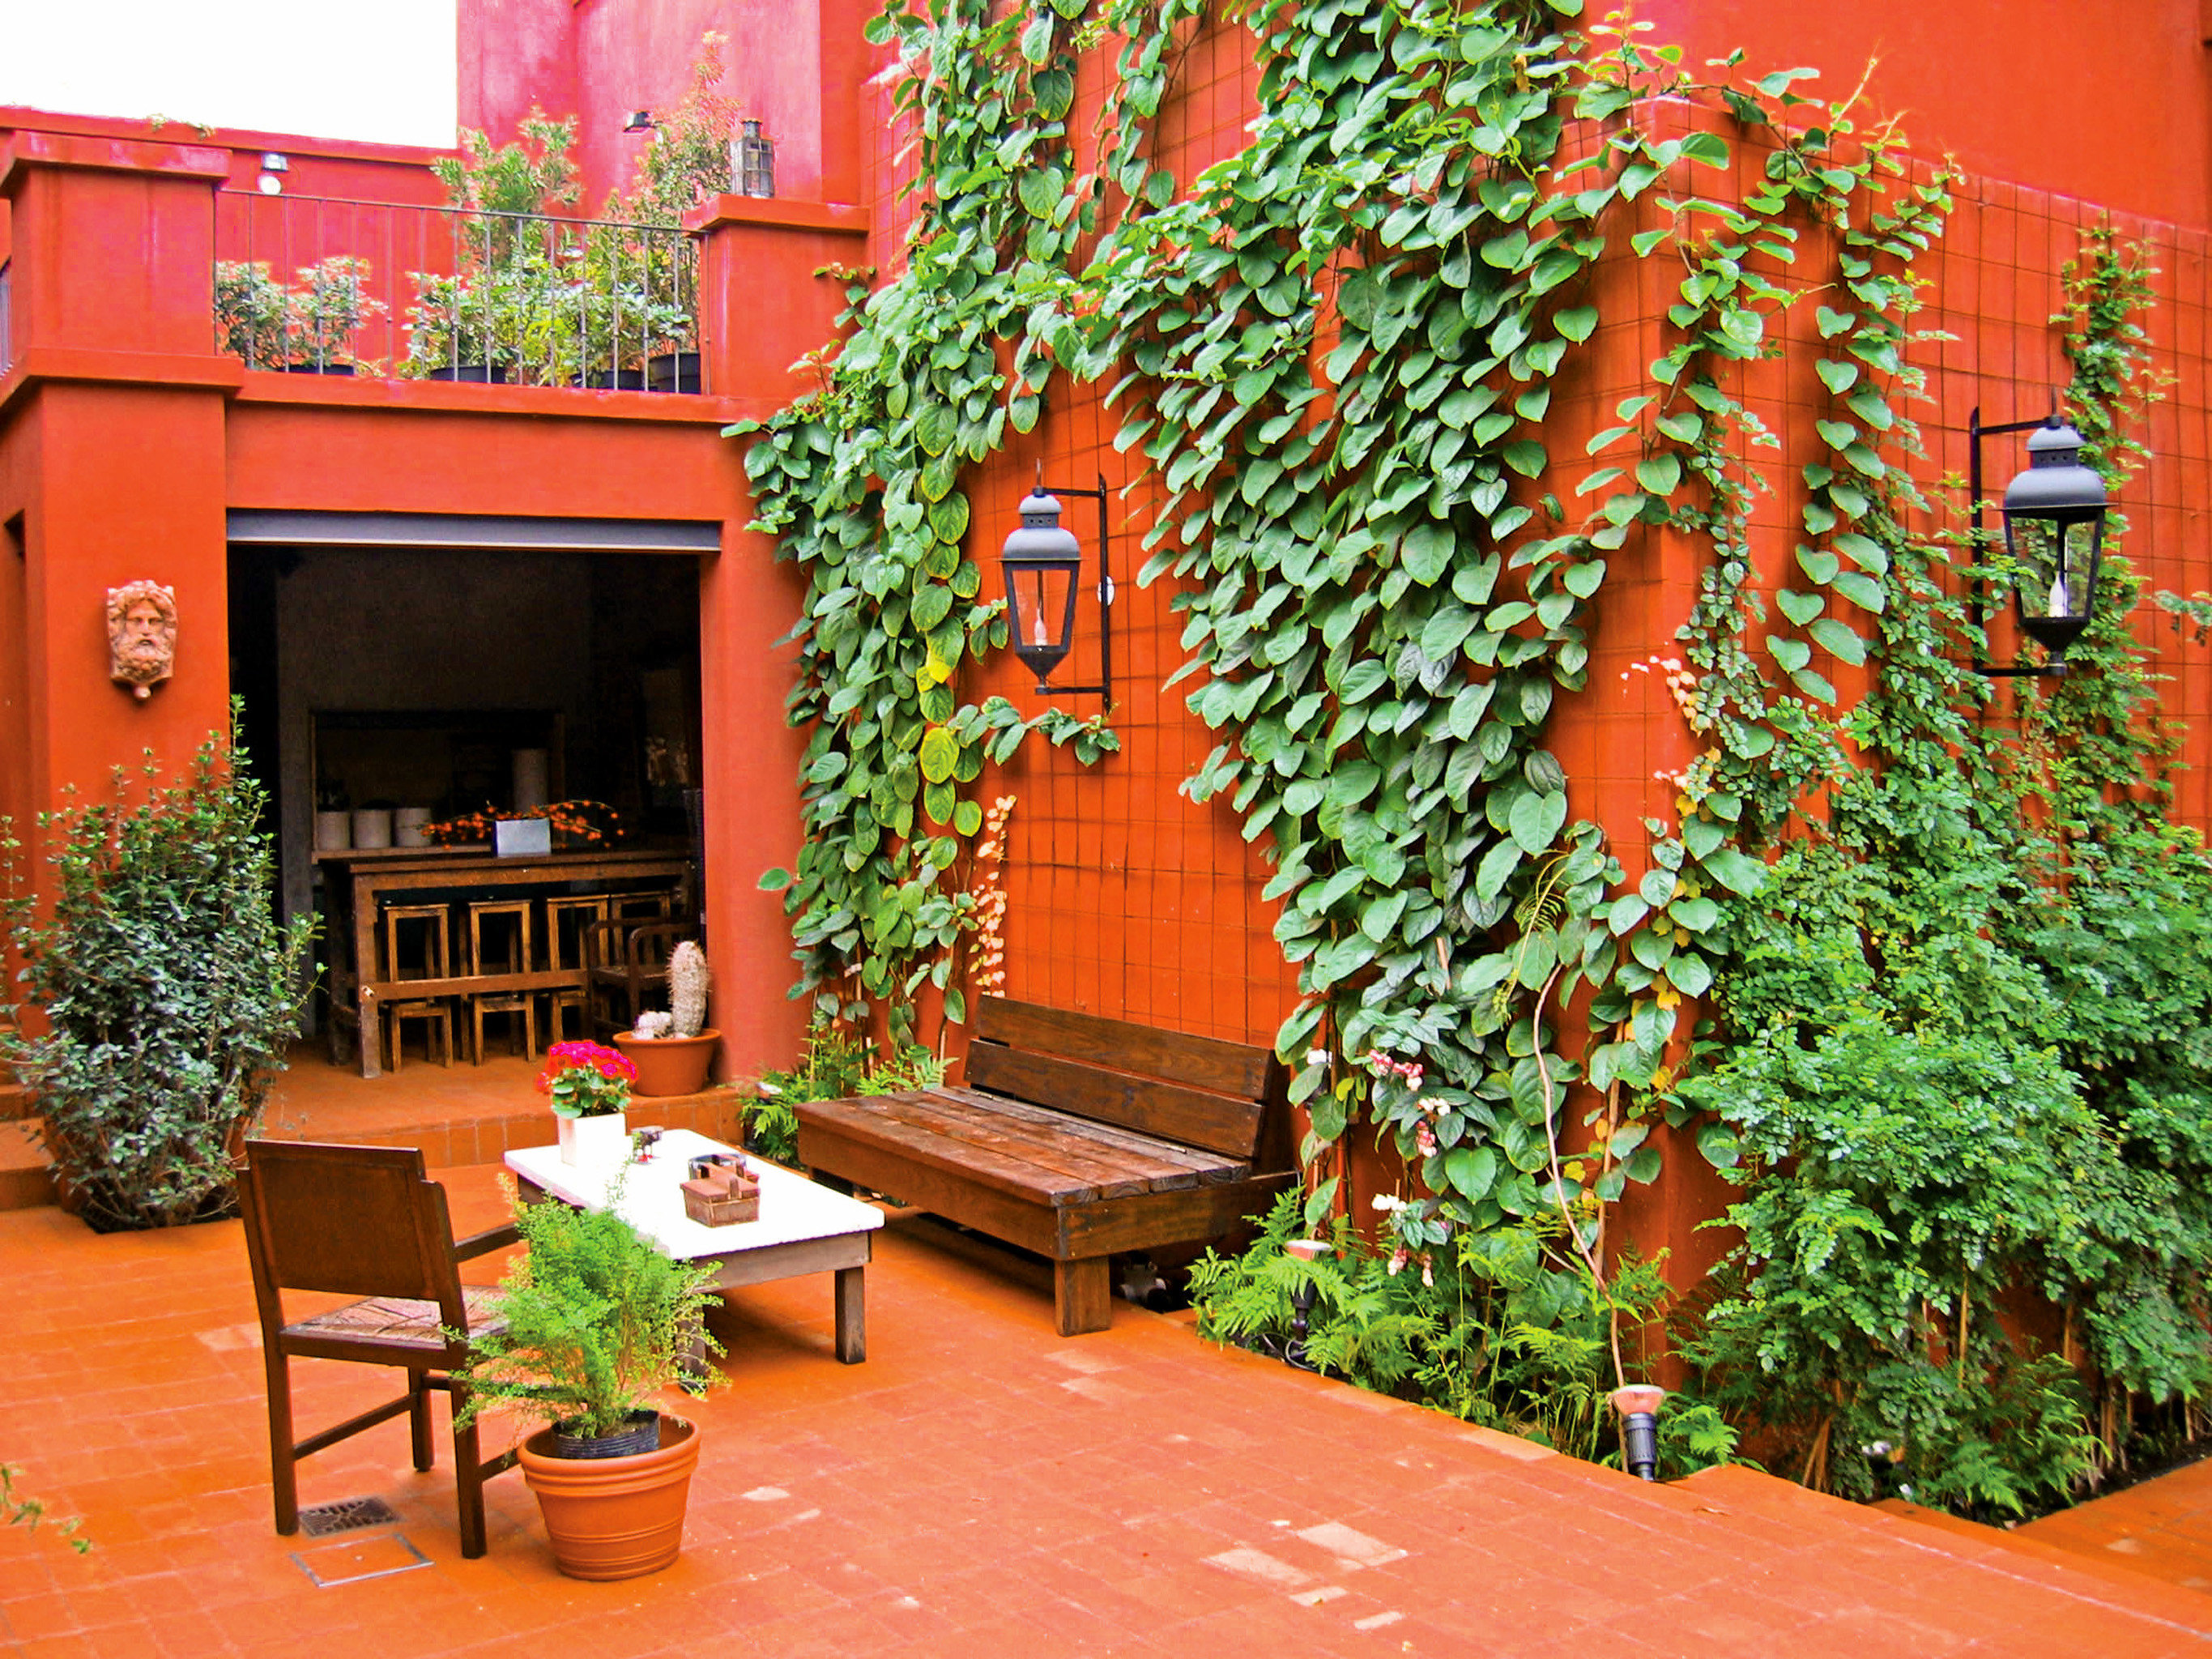 Architecture Dining Drink Eat Grounds Outdoors orange flower red floristry Courtyard backyard Garden yard outdoor structure plant stone